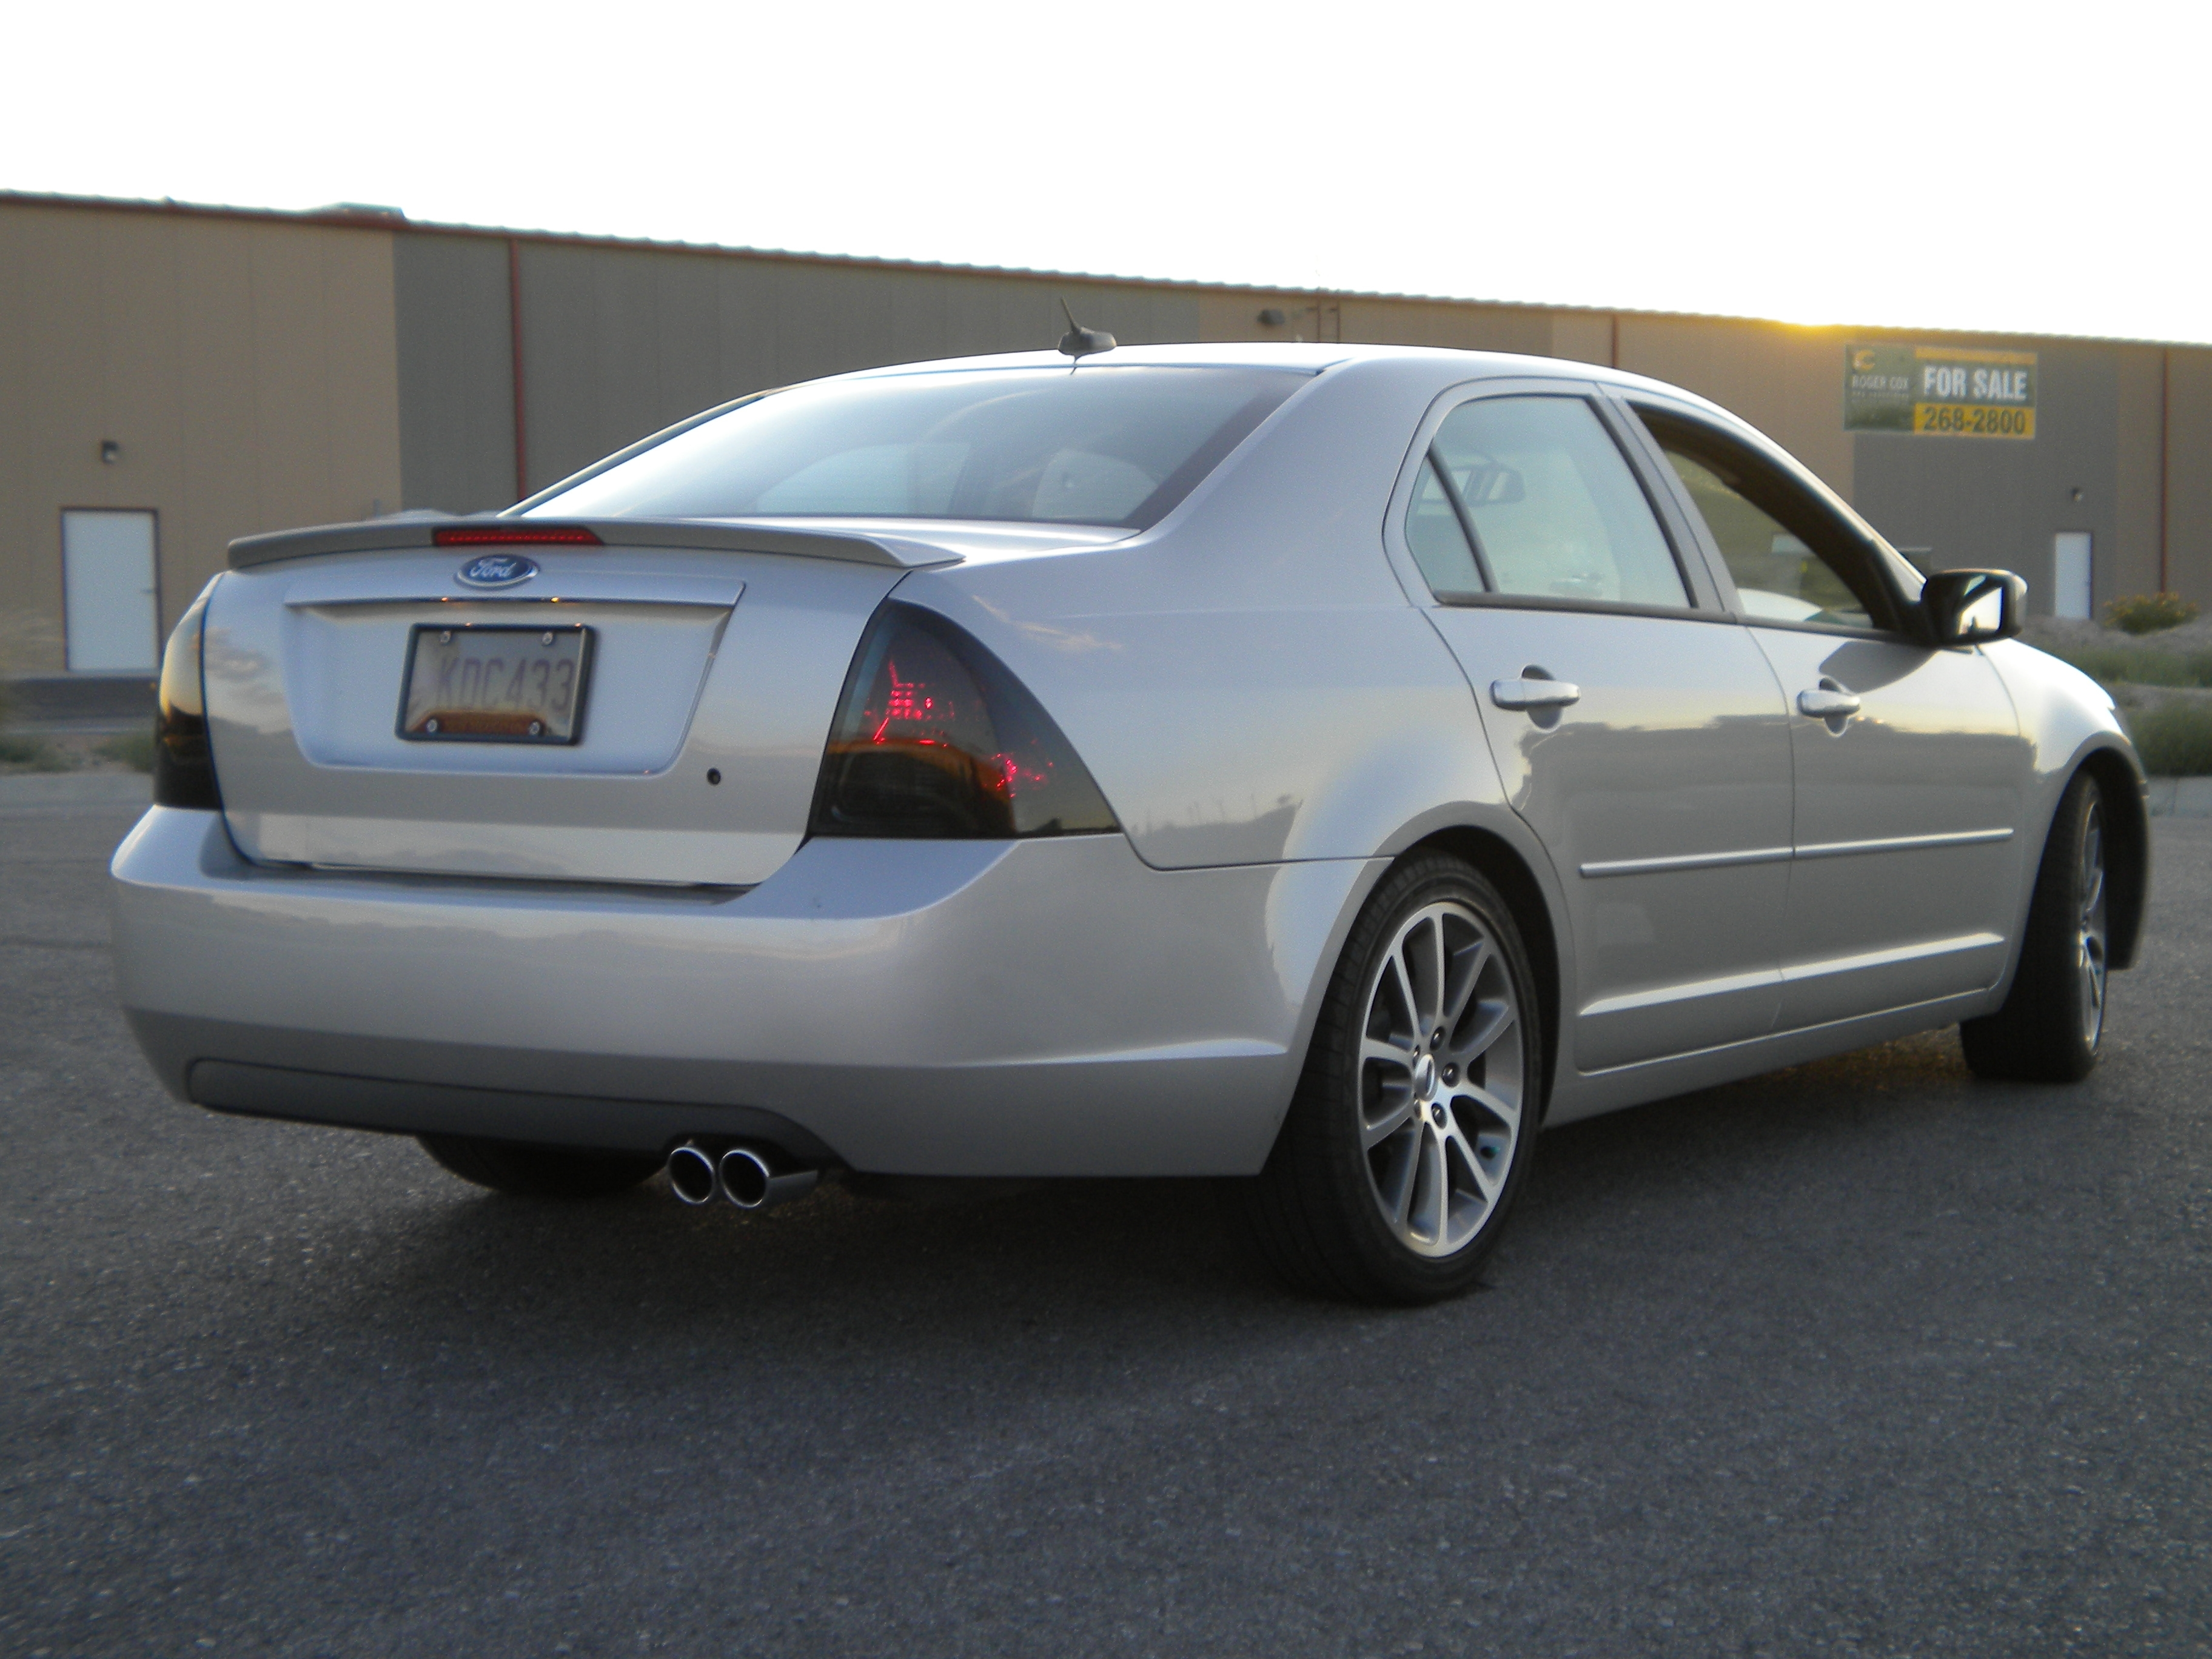 Ford Fusion Mods >> sikford 2008 Ford Fusion Specs, Photos, Modification Info ...